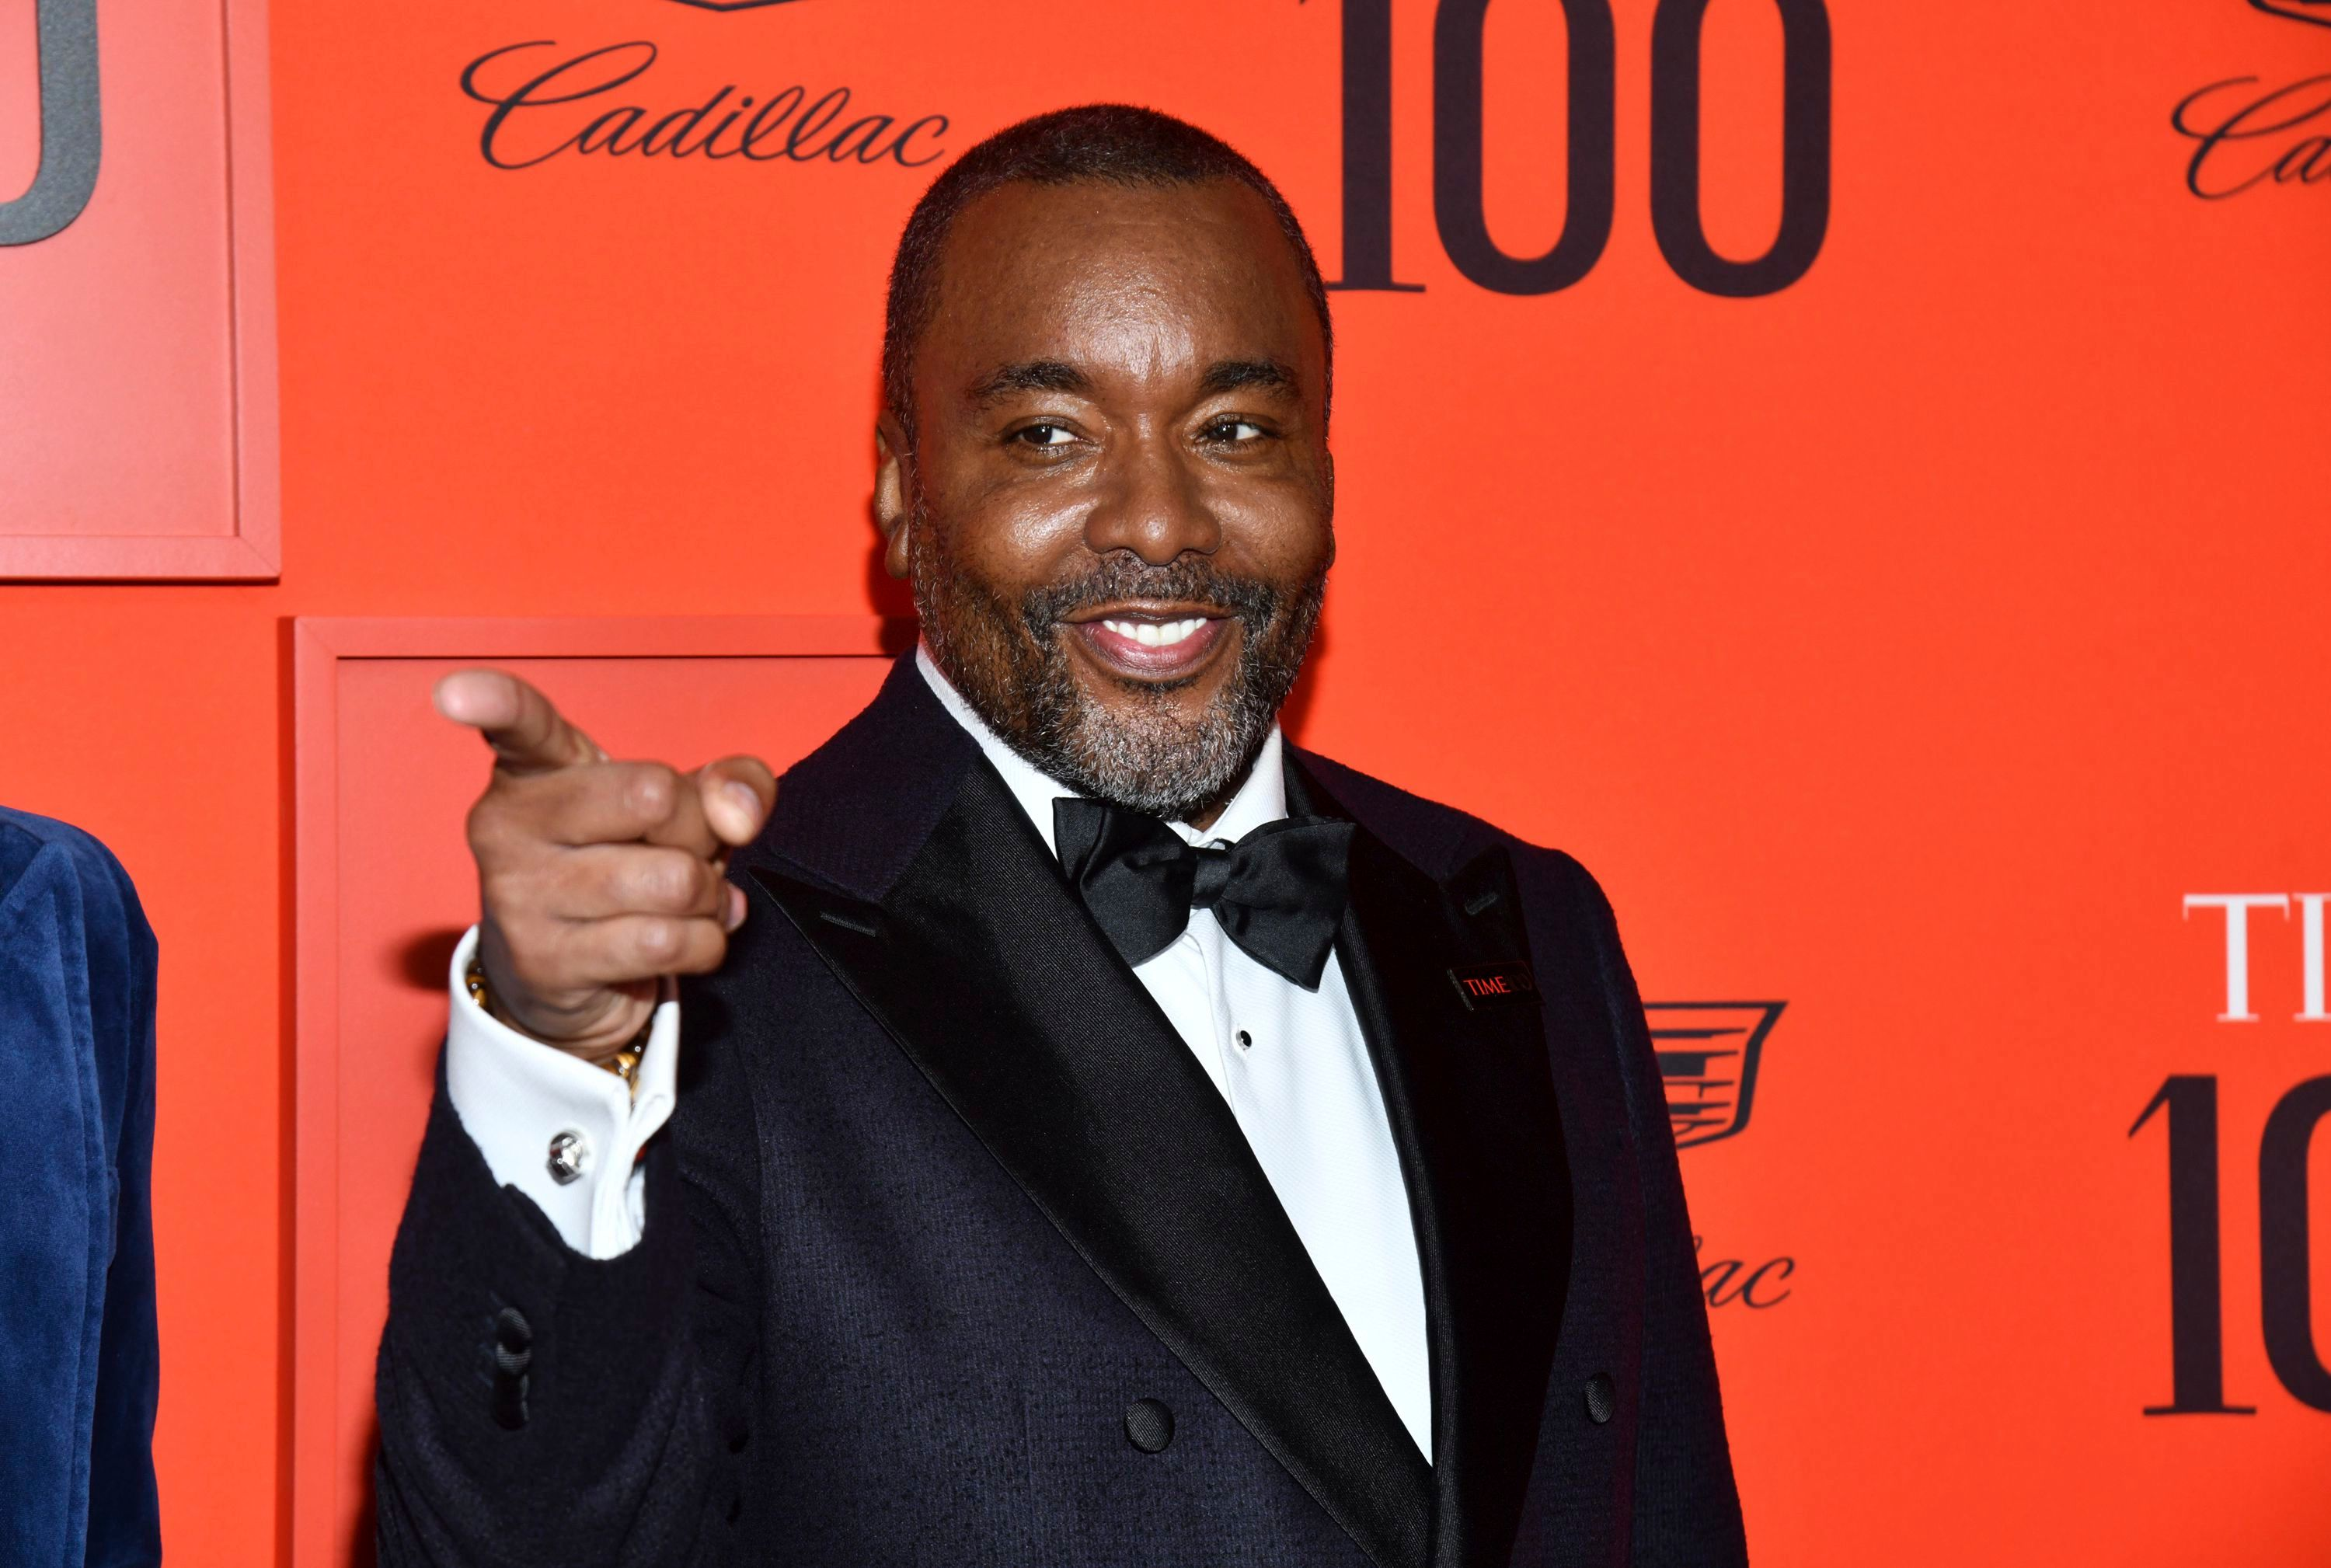 Lee Daniels 'Disturbed' Fox Canceled Series With Black Leads, 'Beyond Embarrassed' by Jussie Smollett